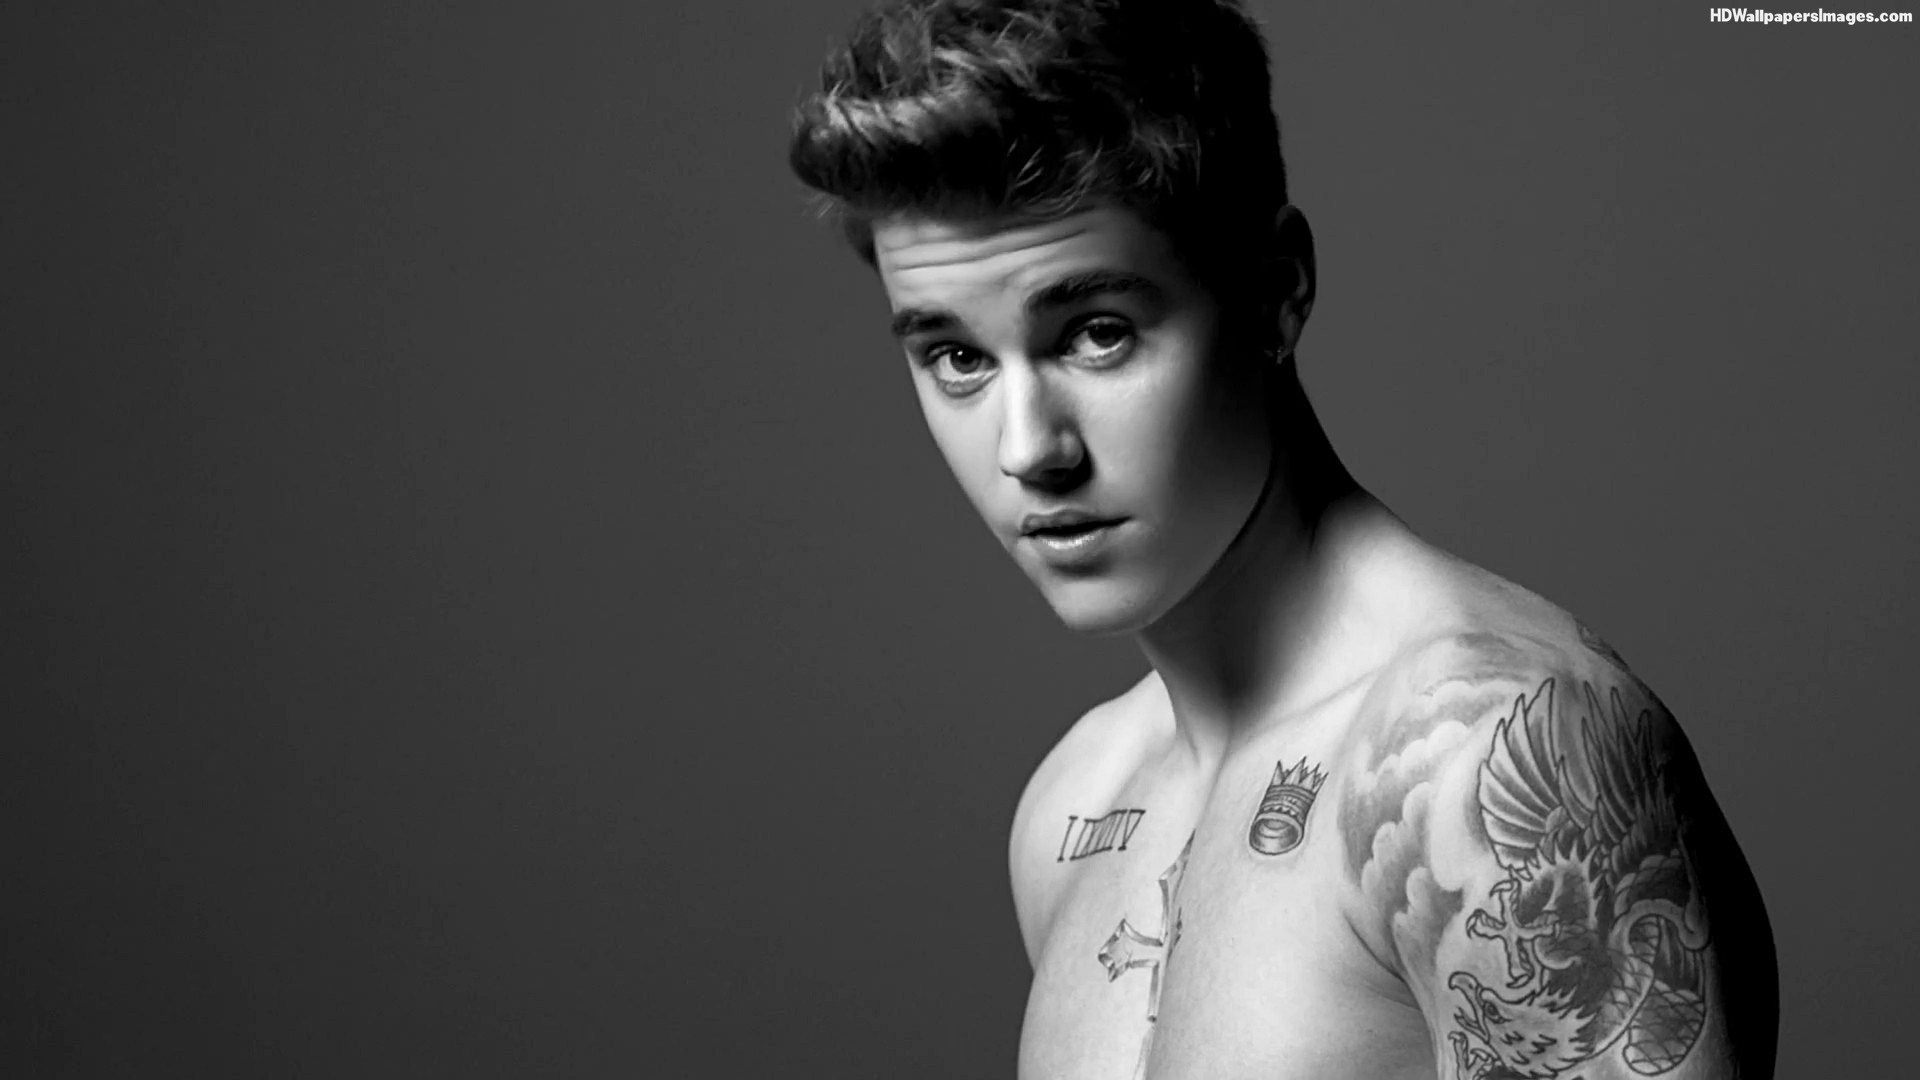 justin bieber body sportive - hd wallpapers - free wallpapers